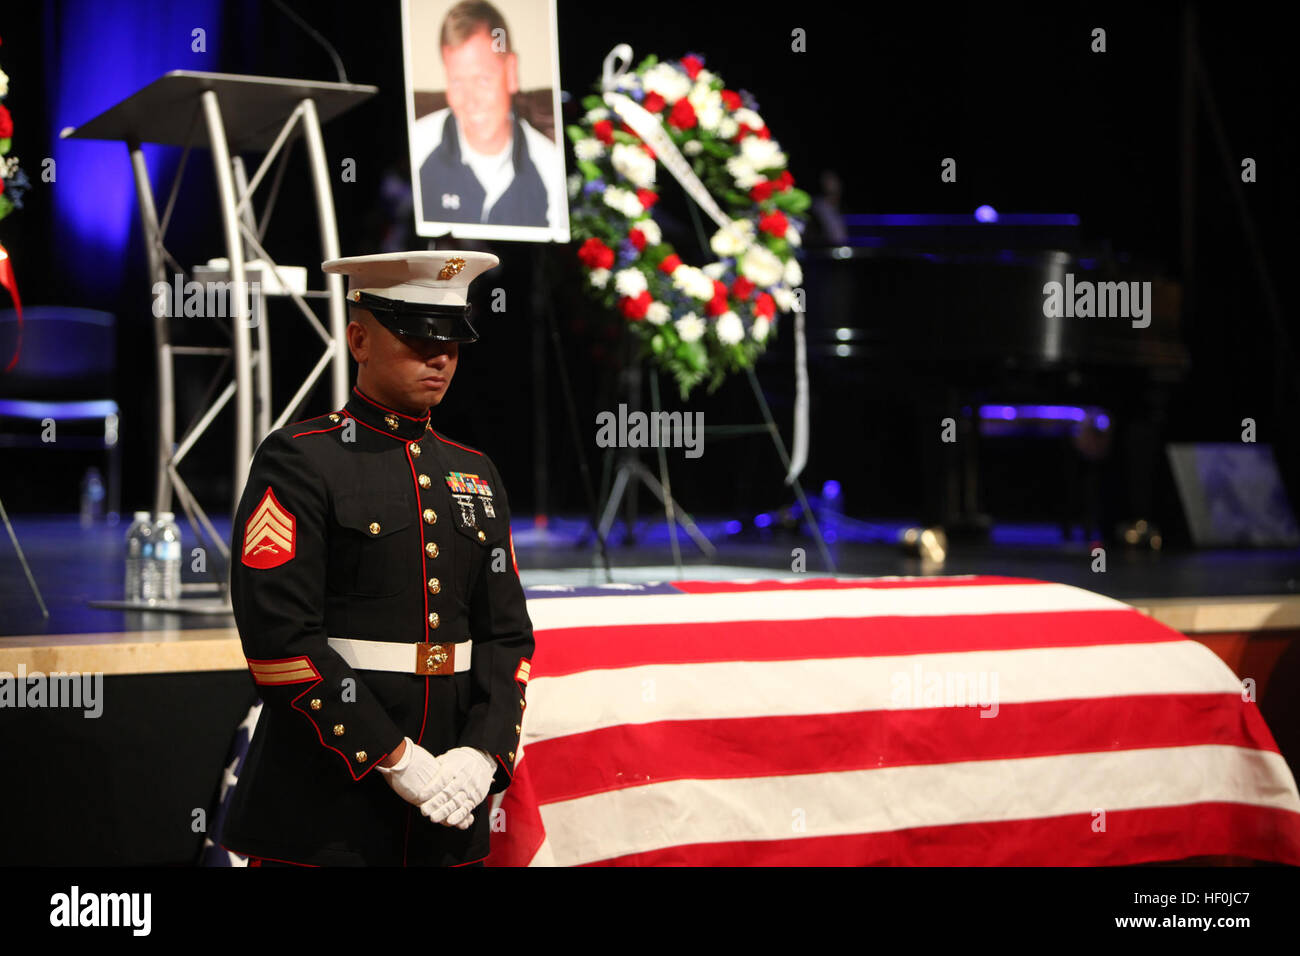 During the memorial ceremony for Officer Jeremy Henwood, Marines and police officers stand guard over his casket Stock Photo